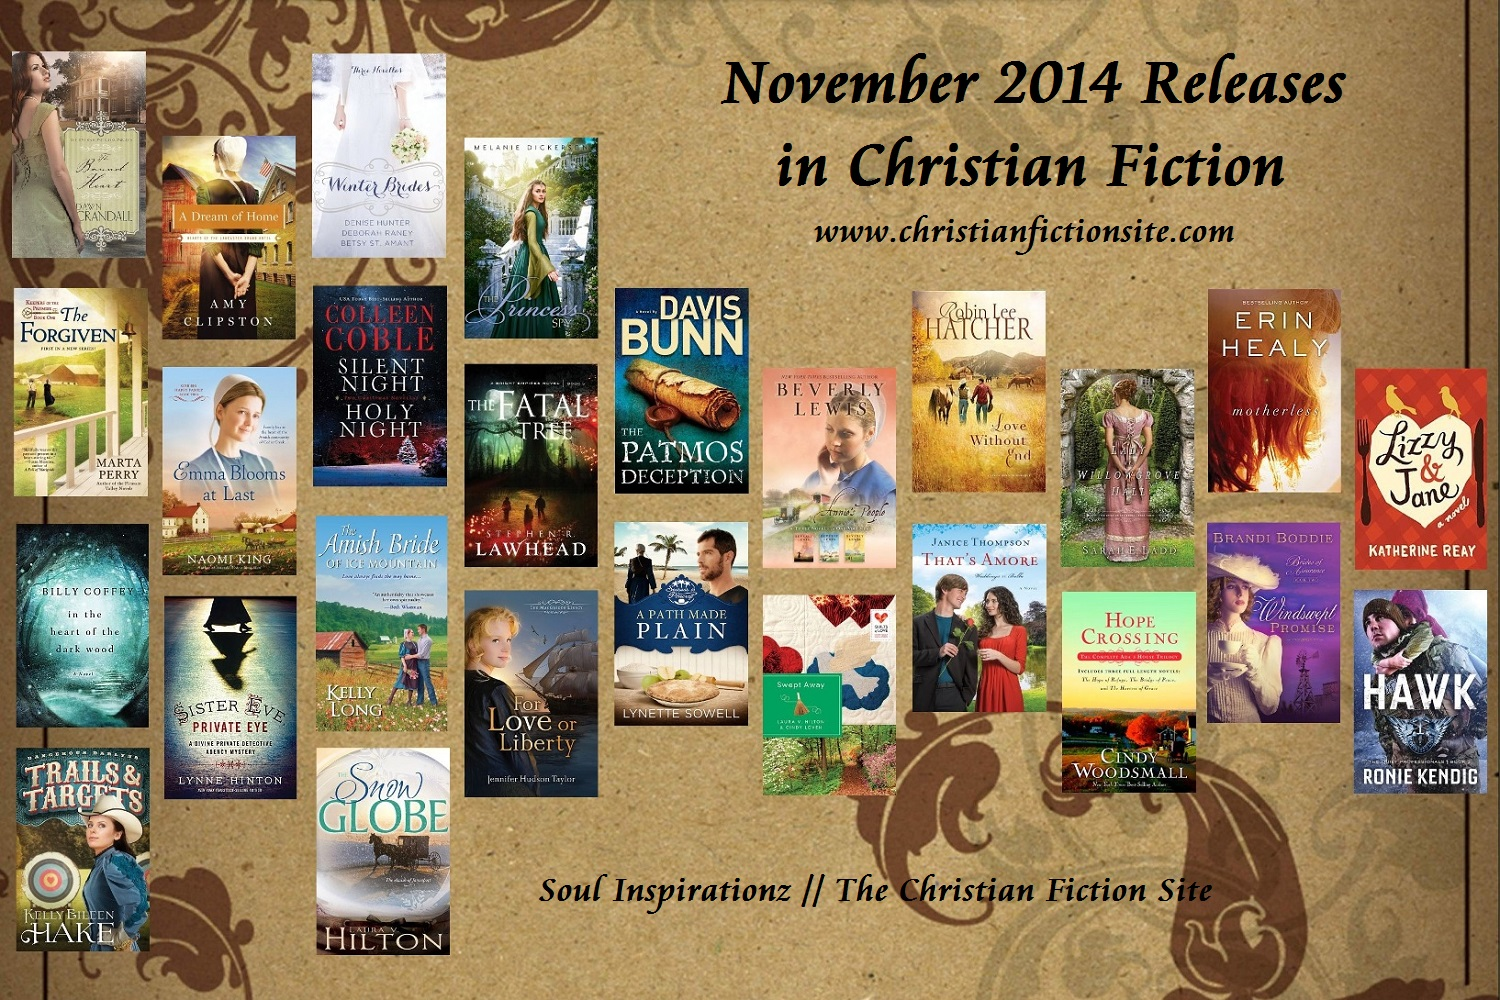 November 2014 Christian Fiction